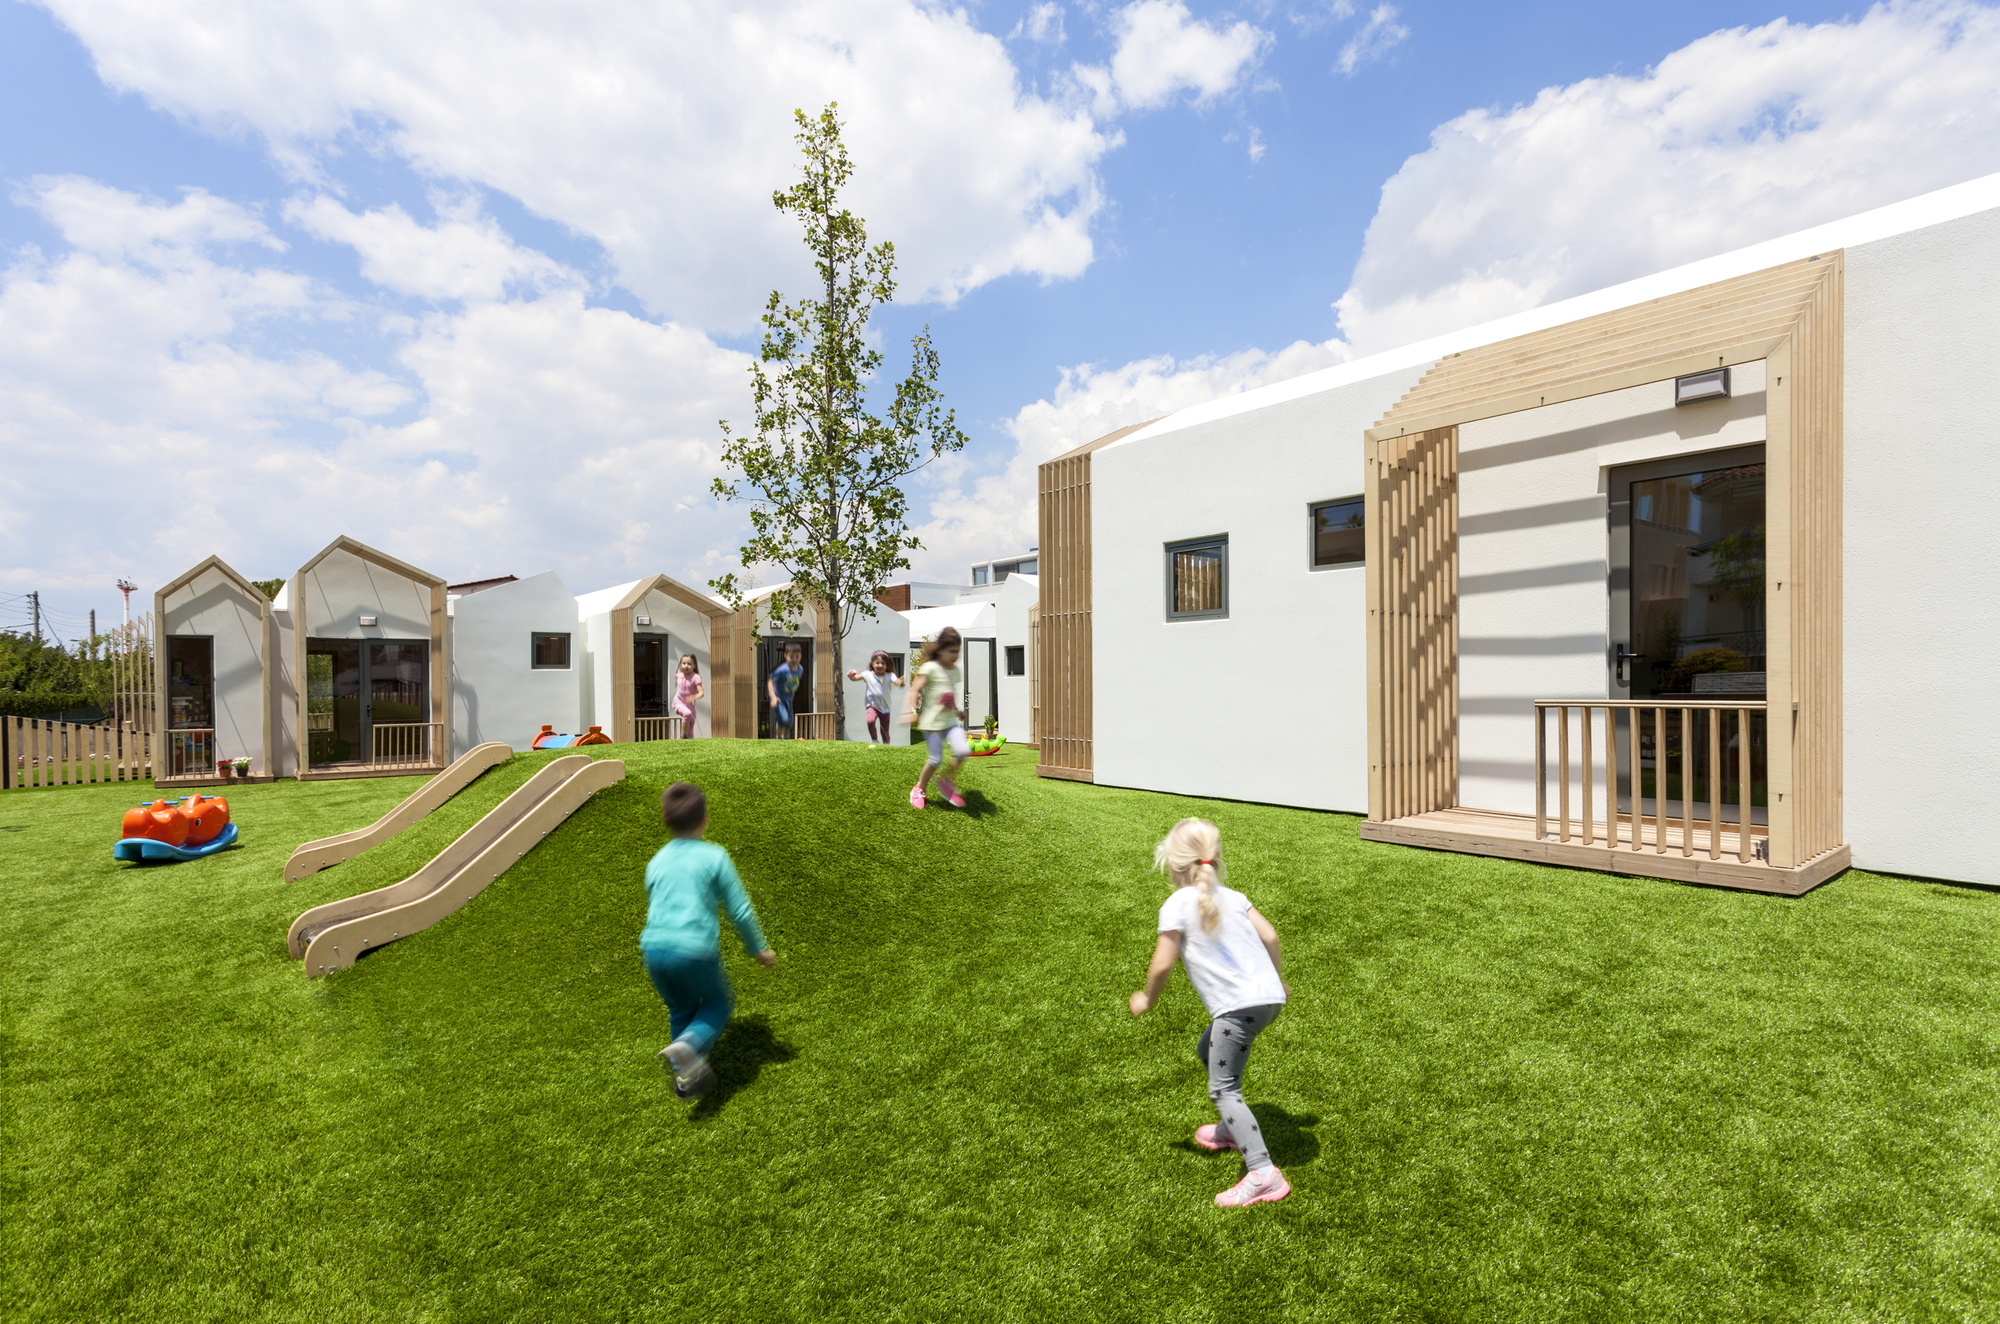 Public Nursery in Glyfada / KLab architecture